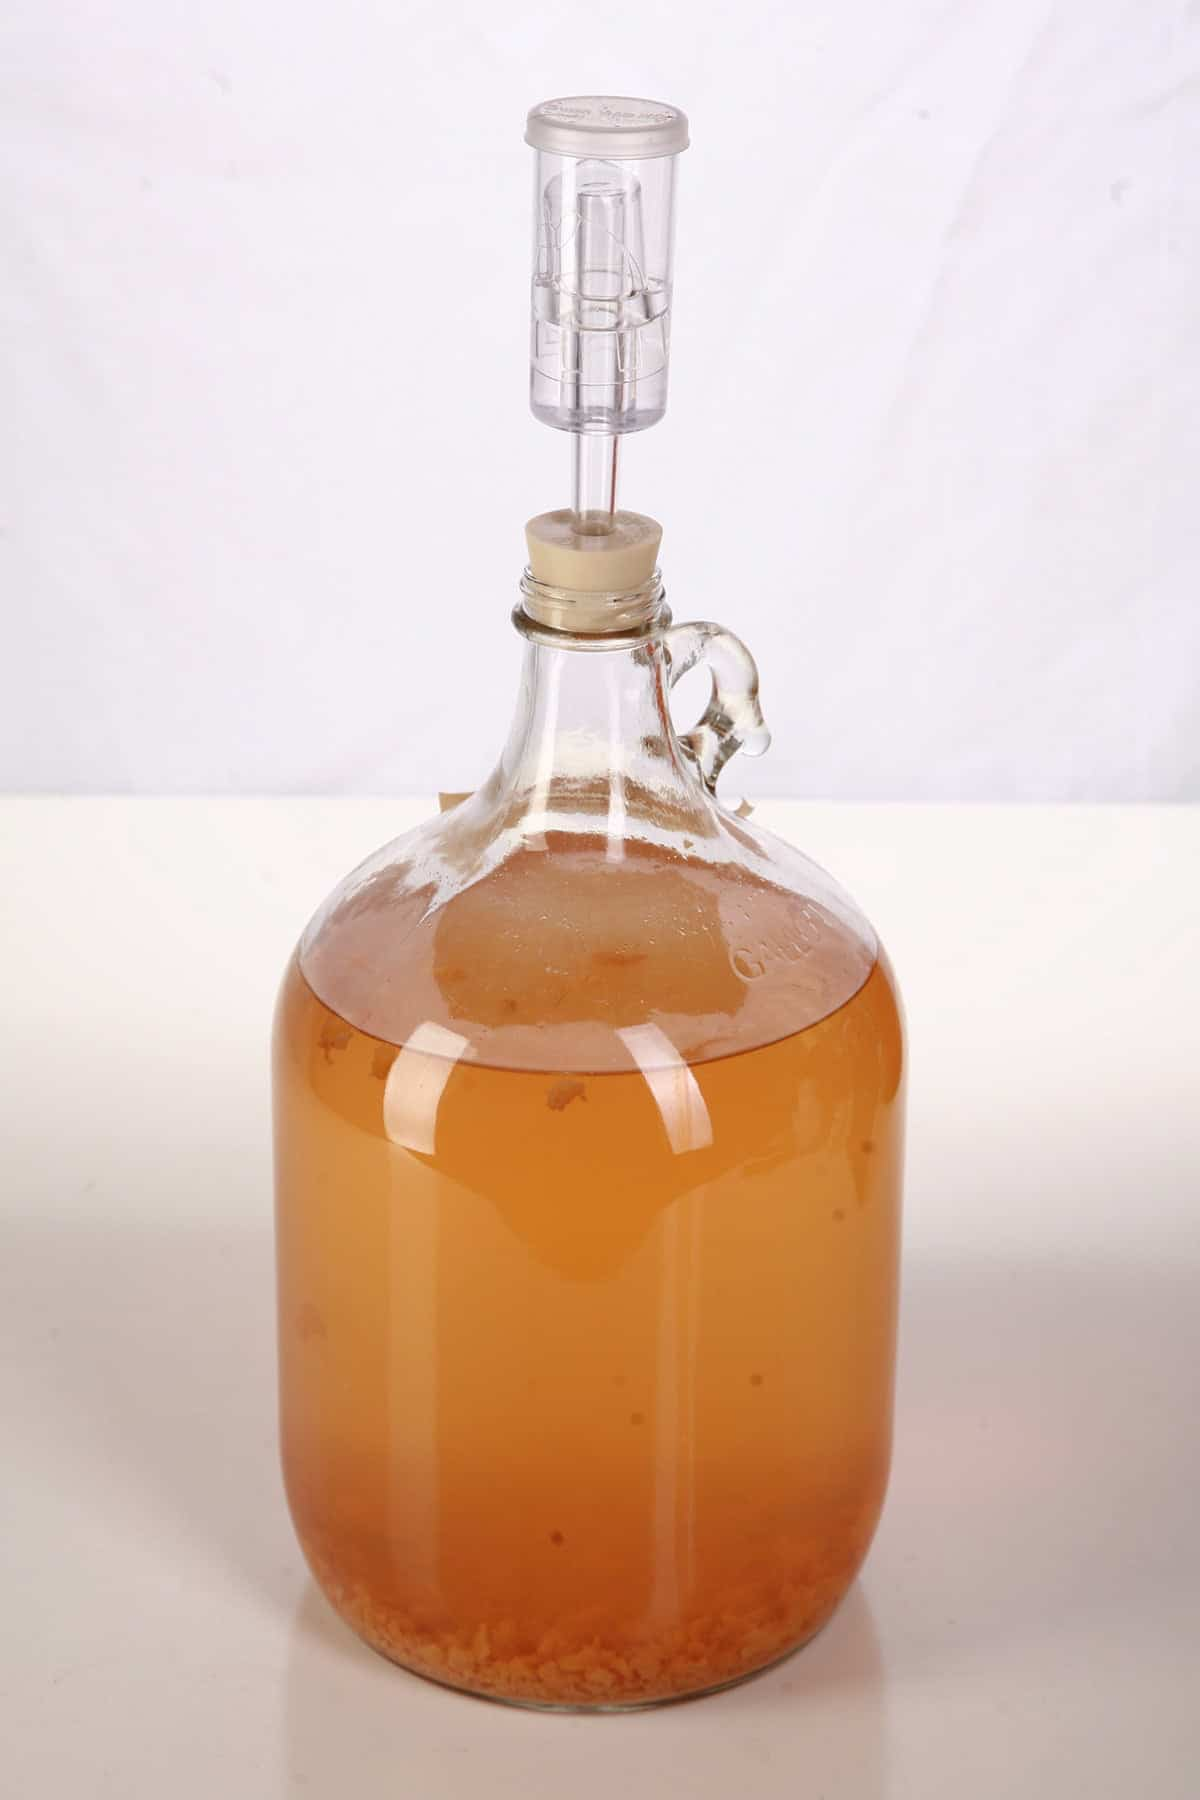 A glass carboy full of amber wine. Sediment can be seen at the bottom.